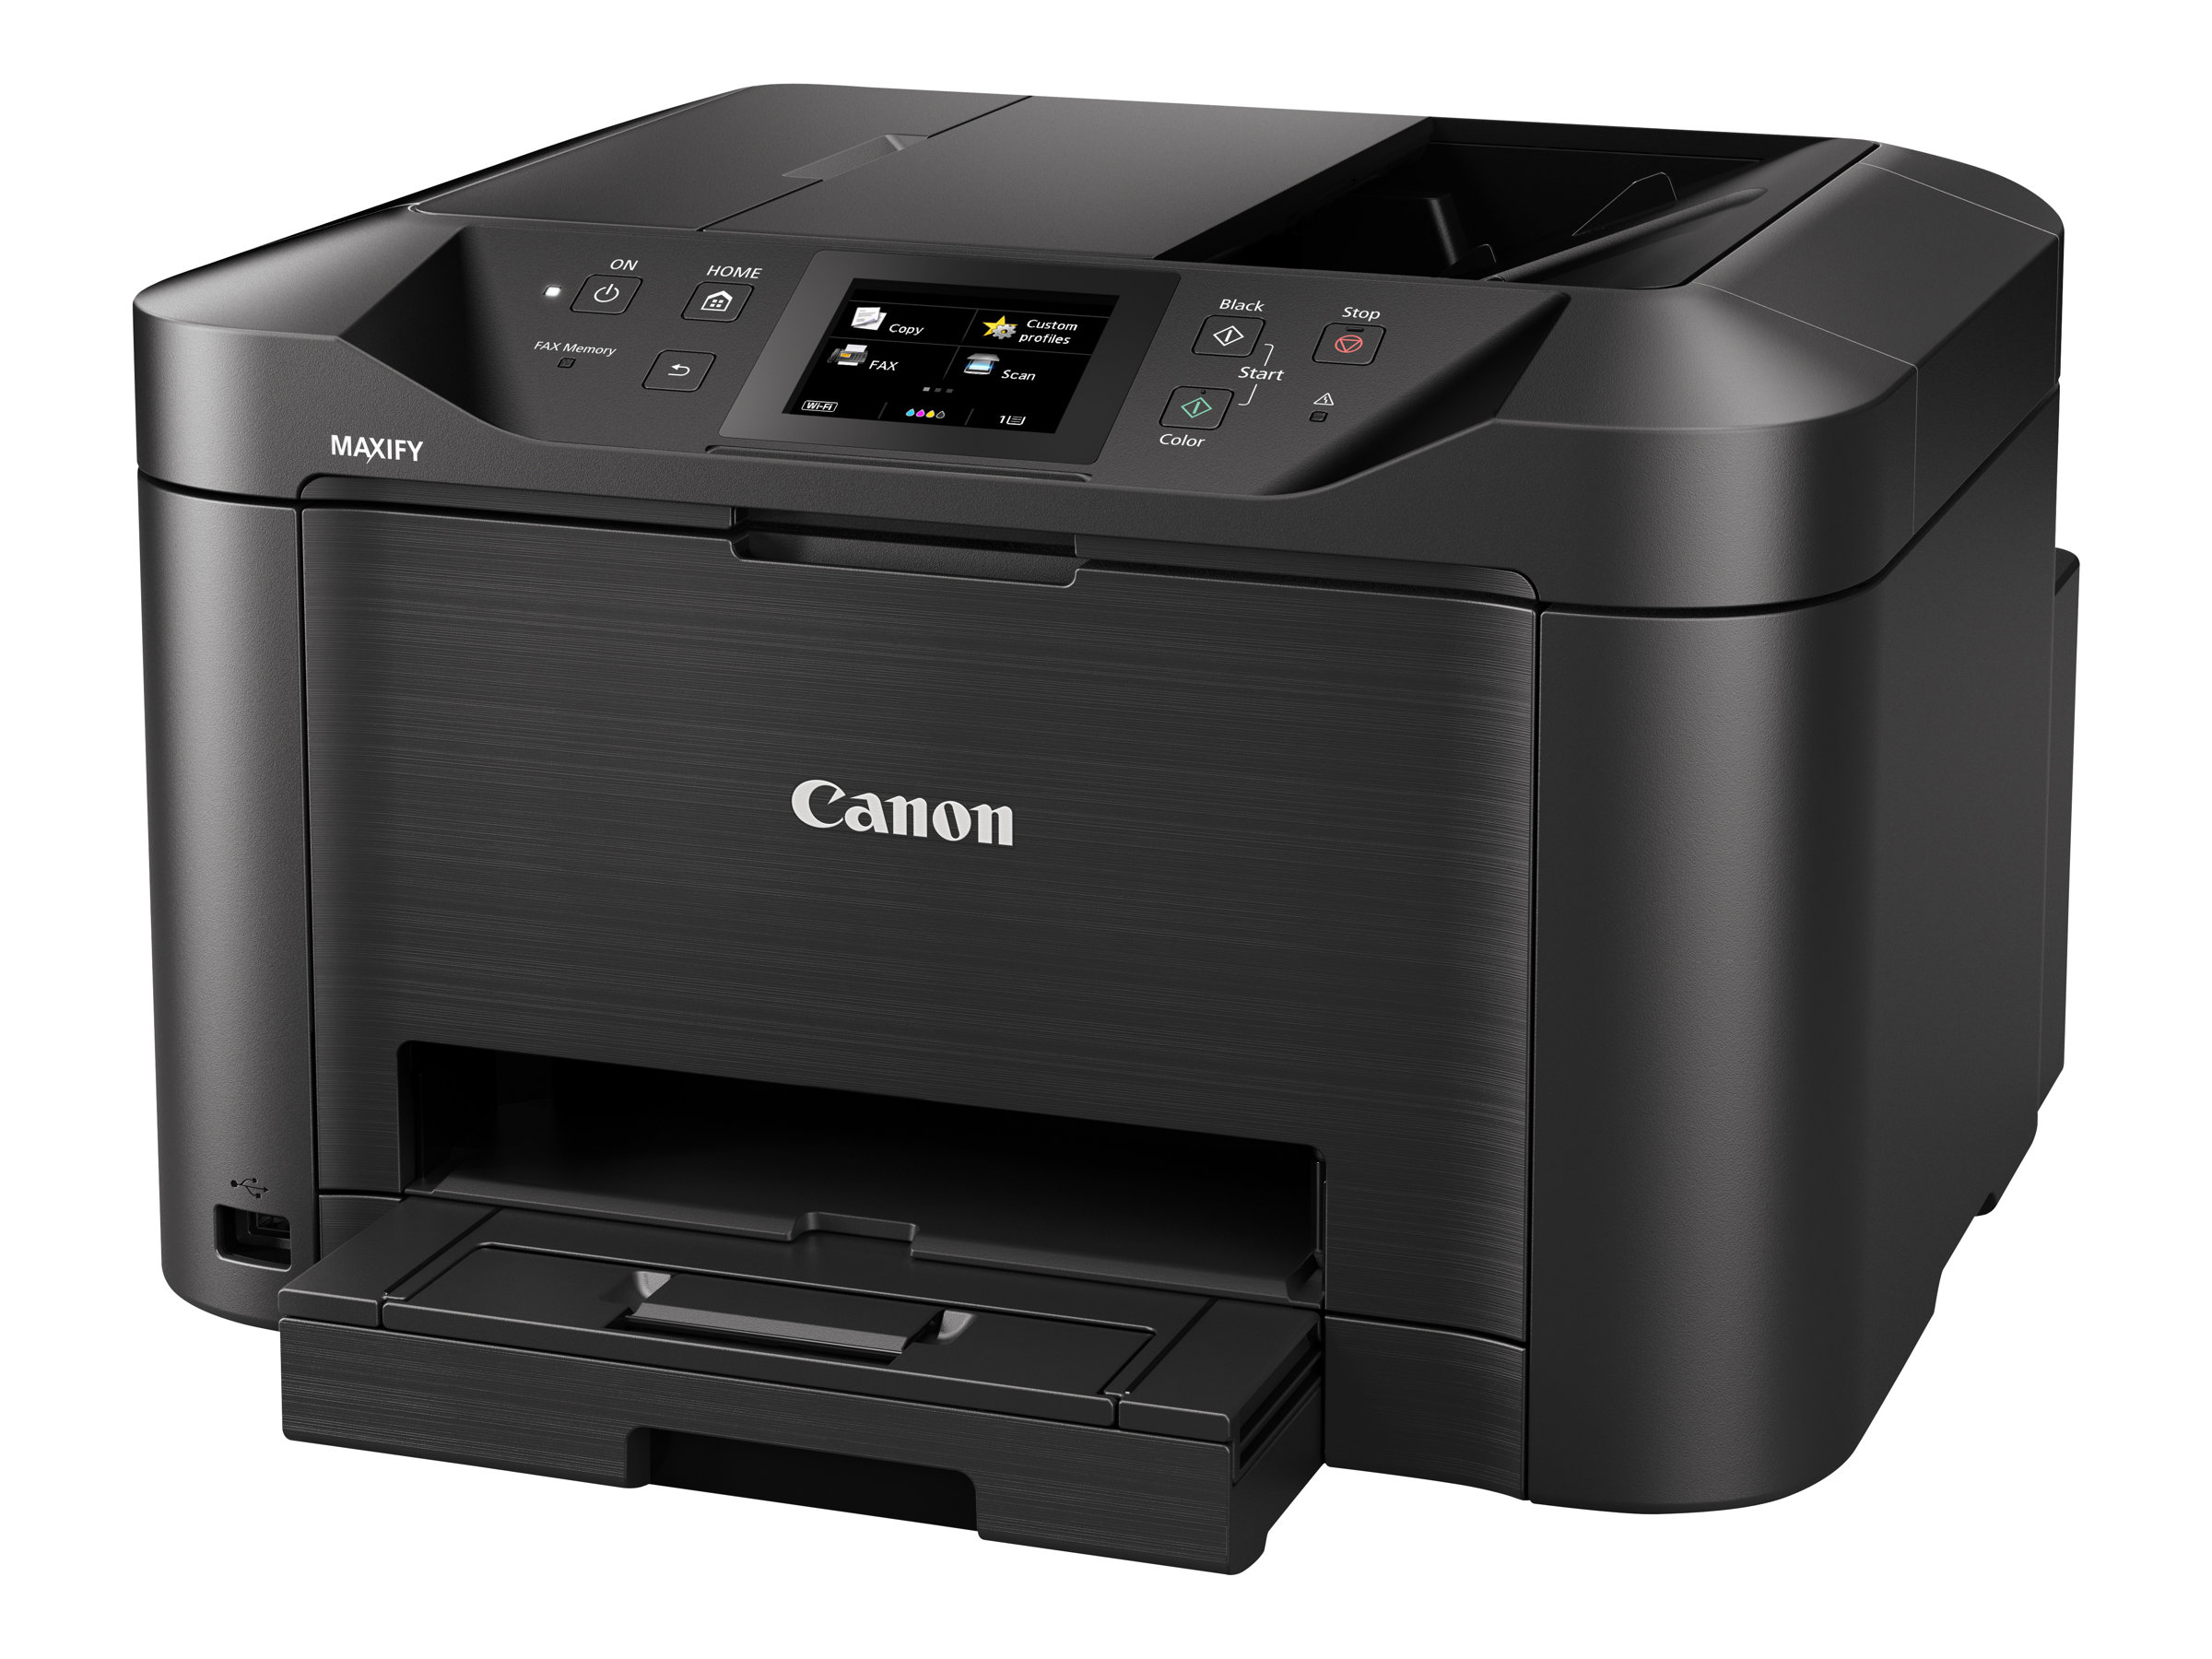 Canon MAXIFY MB5150 - Multifunktionsdrucker - Farbe - Tintenstrahl - A4 (210 x 297 mm), Legal (216 x 356 mm) (Original) - A4/Legal (Medien)